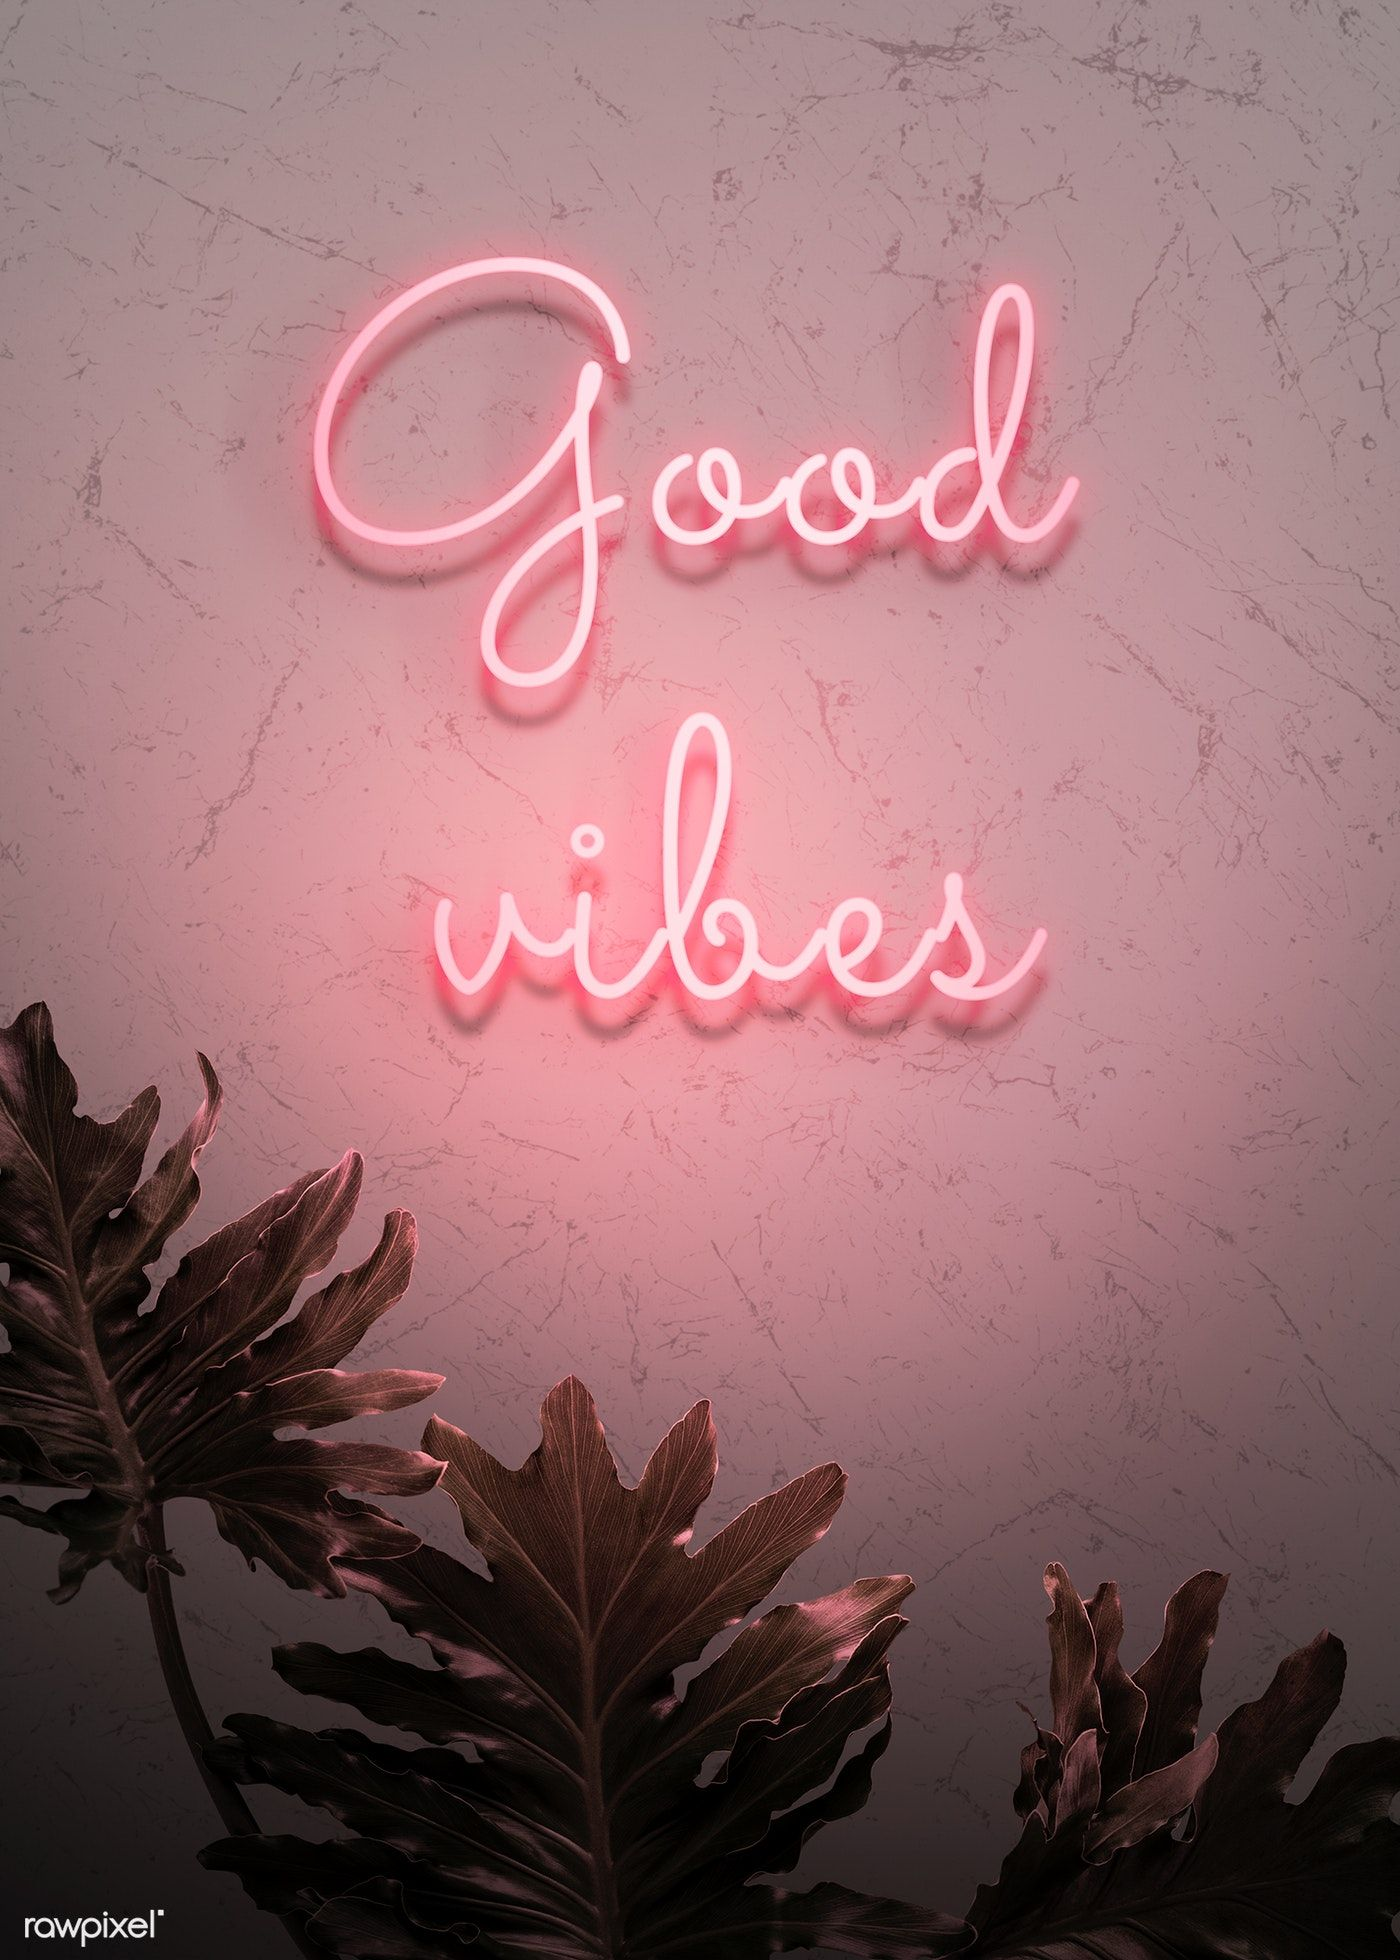 Download Premium Image Of Neon Red Good Vibes On A Wall 894340